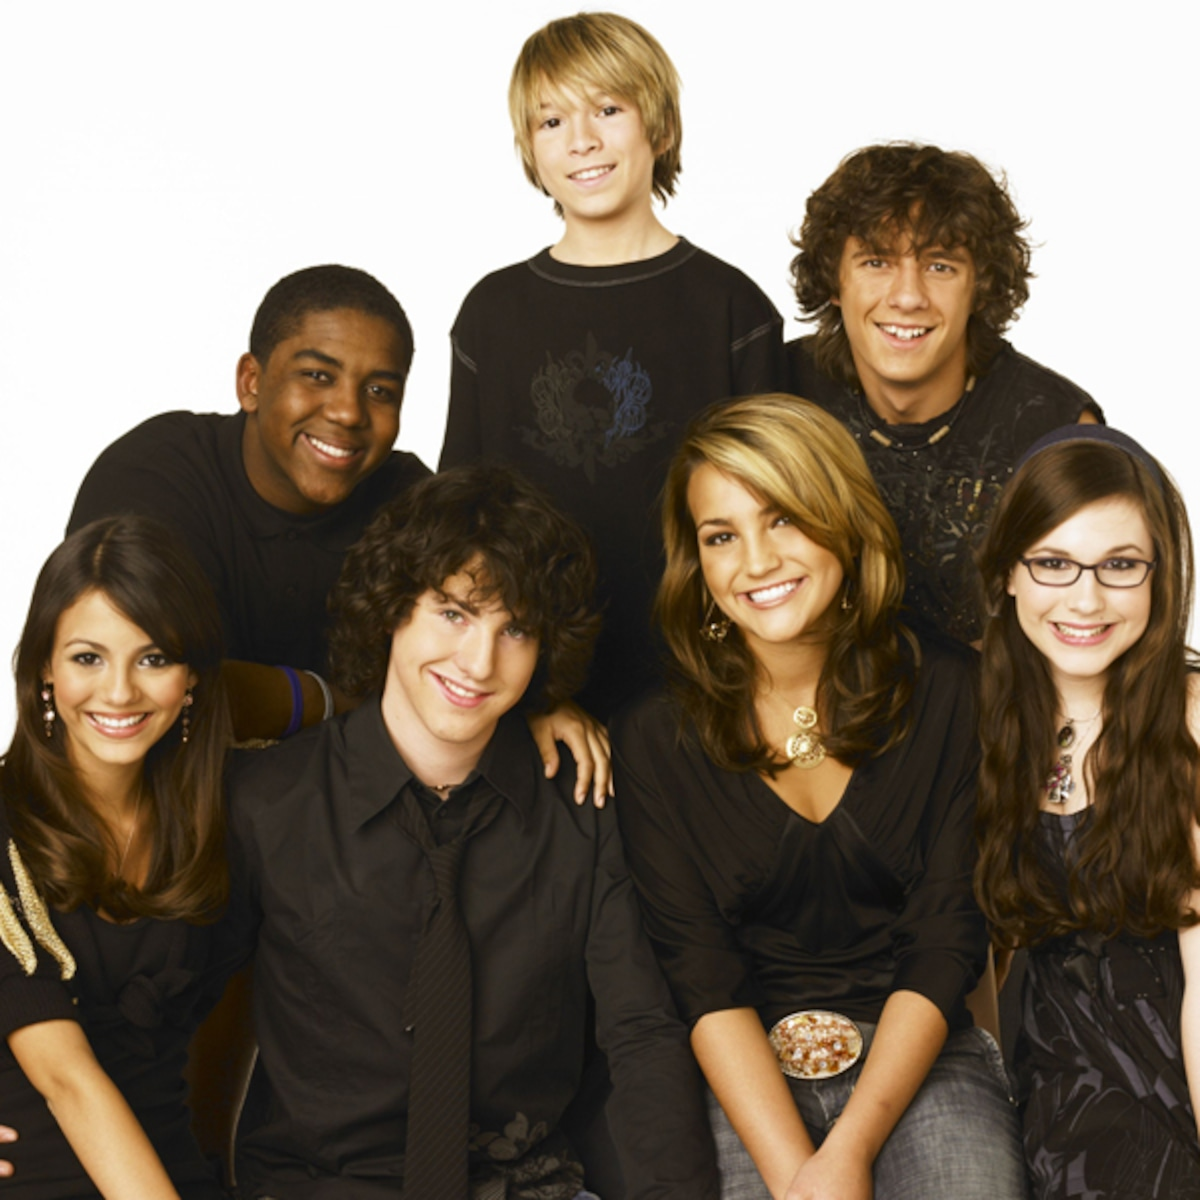 Class Is In Session 15 Secrets About Zoey 101 E News